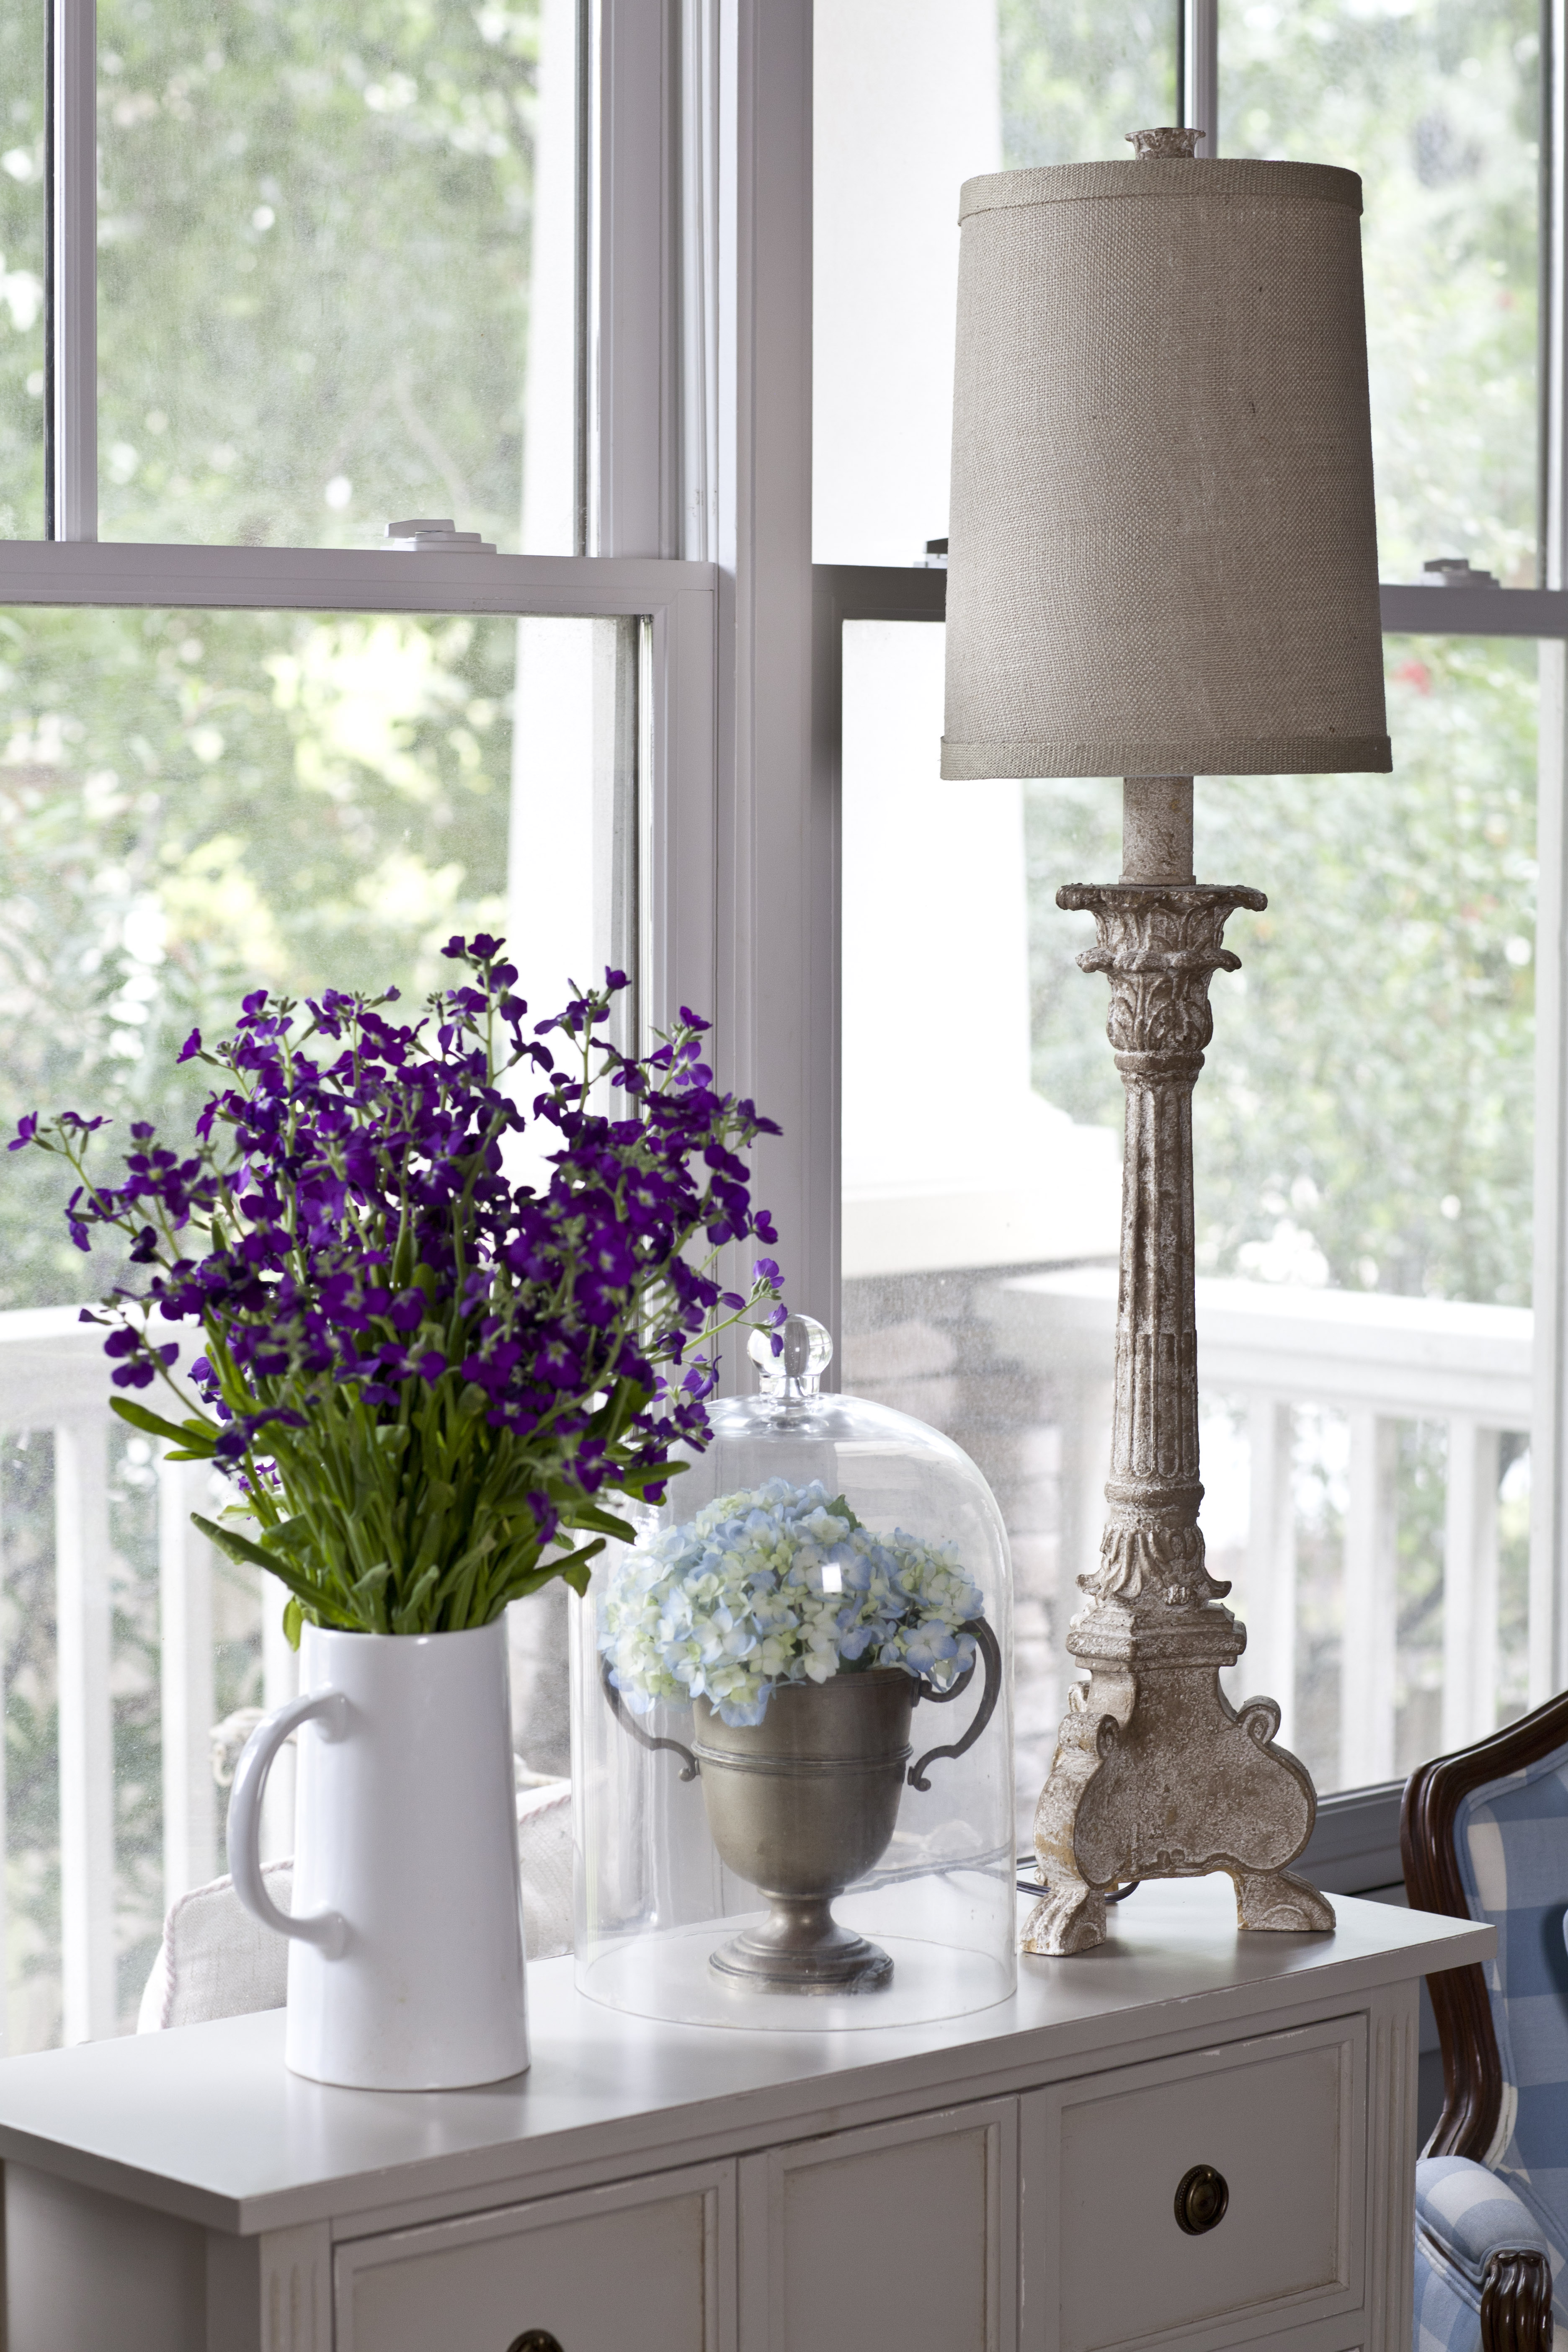 Cedar Hill Farmhouse Collection lamps